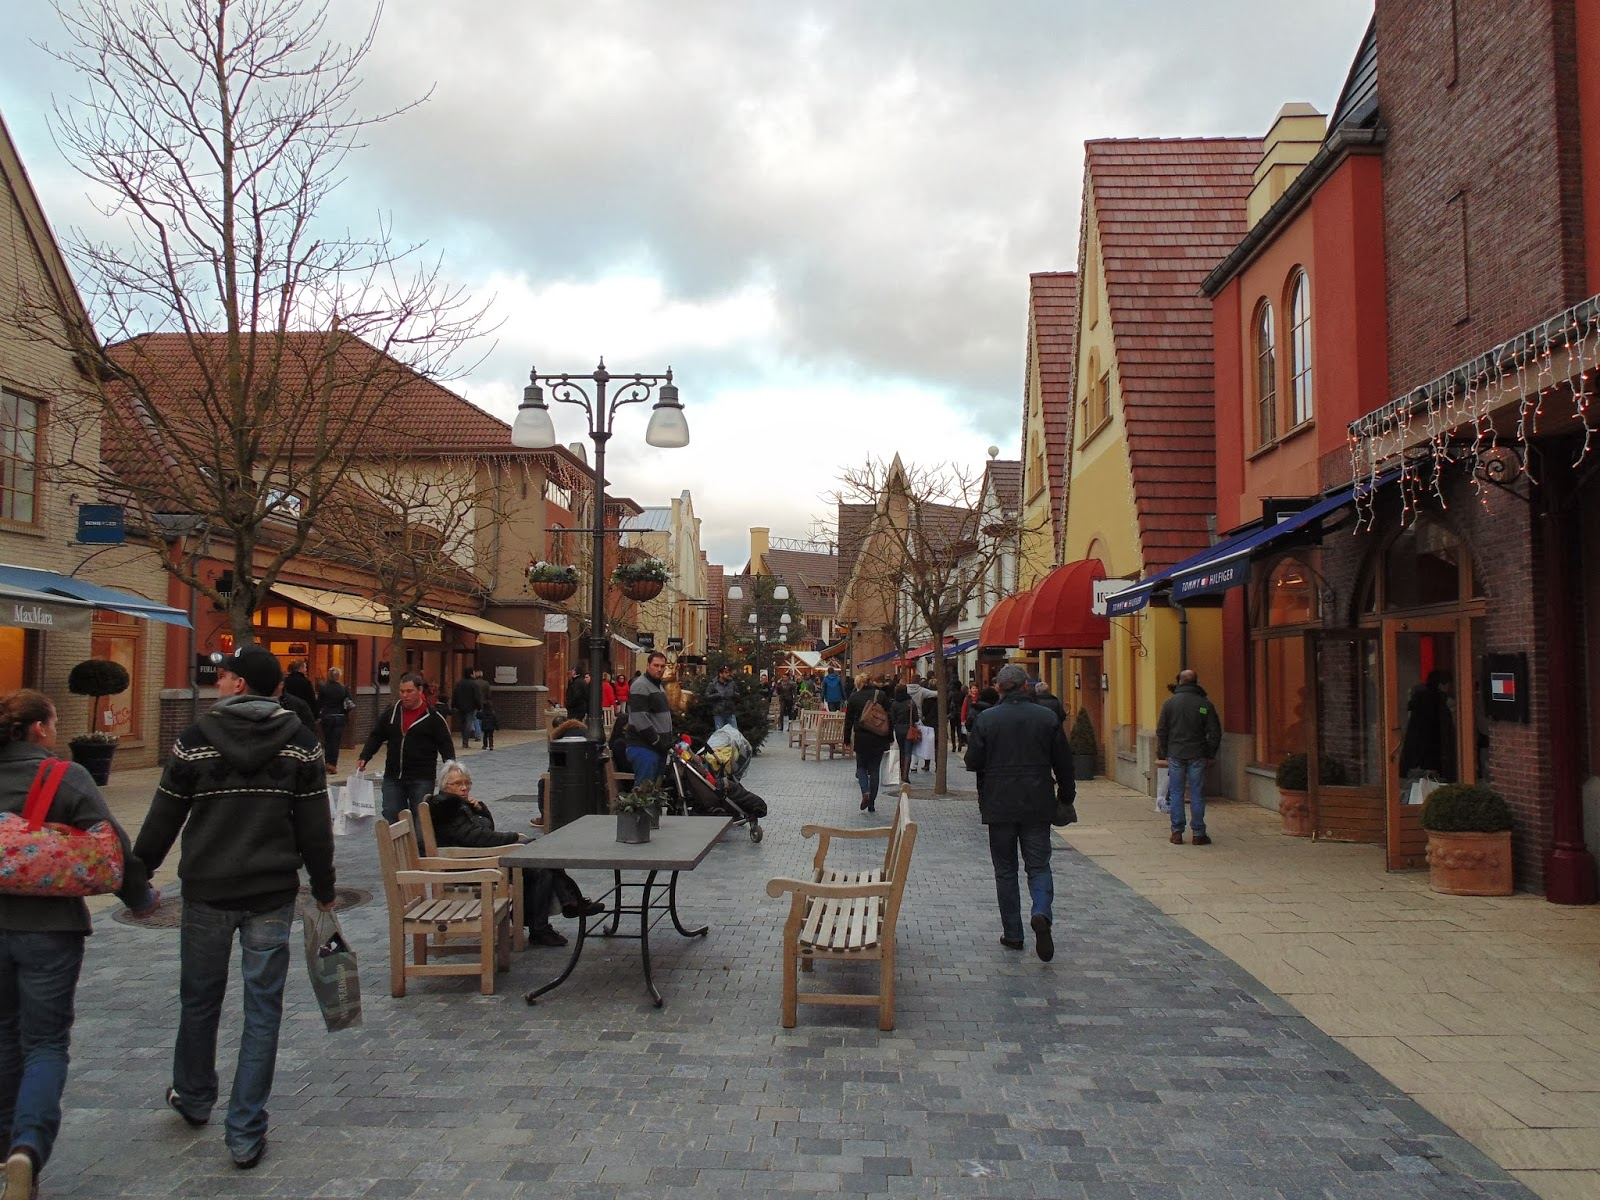 Browse 3 Outlet Malls and Outlets in Belgium: mall location & driving directions, amenities, working hours.